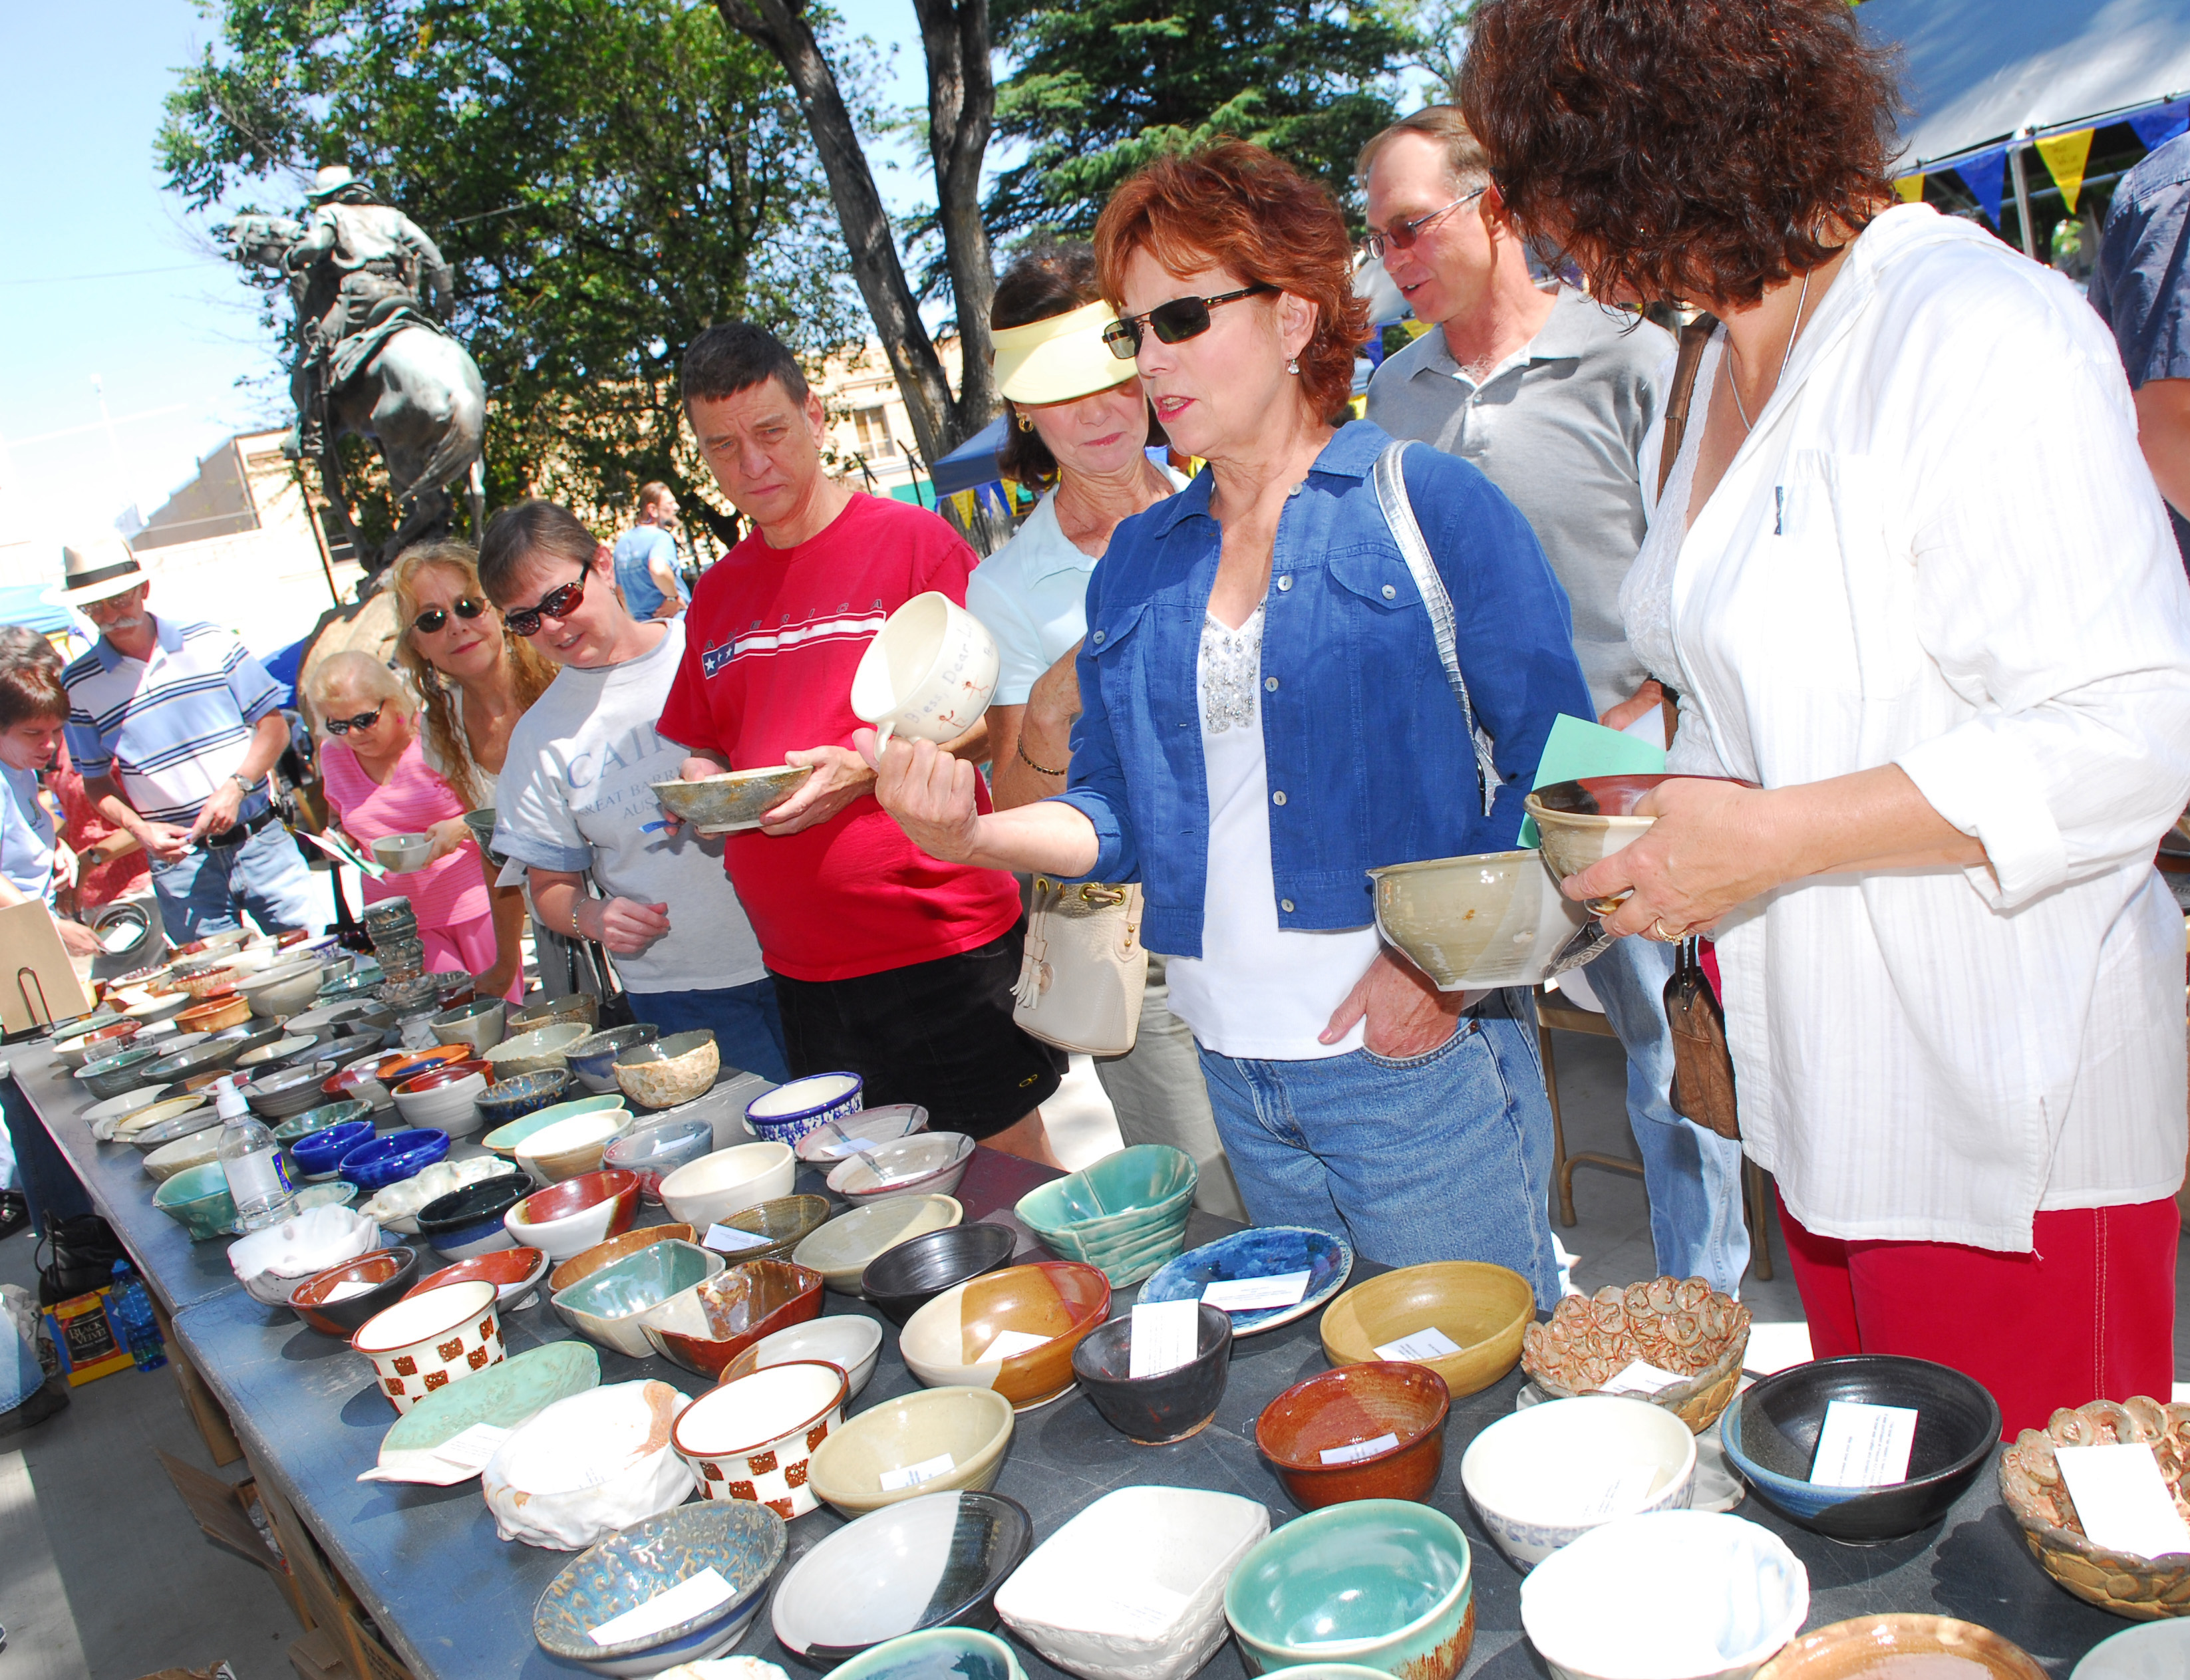 Editorial: Let's empty those Bowls, make a difference